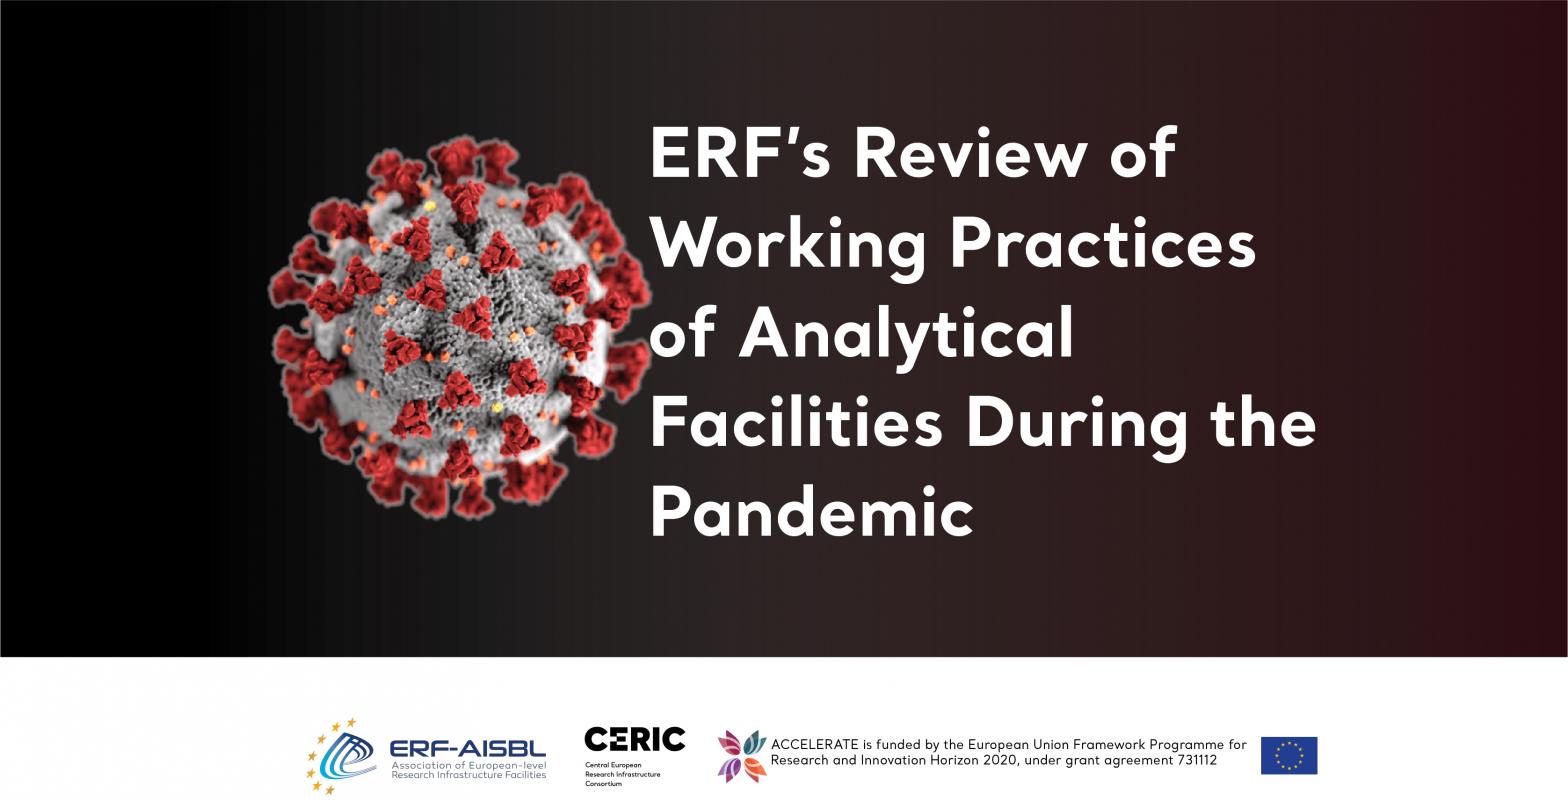 ERF's Review of Working Practices of Analytical facilities During the Pandemic